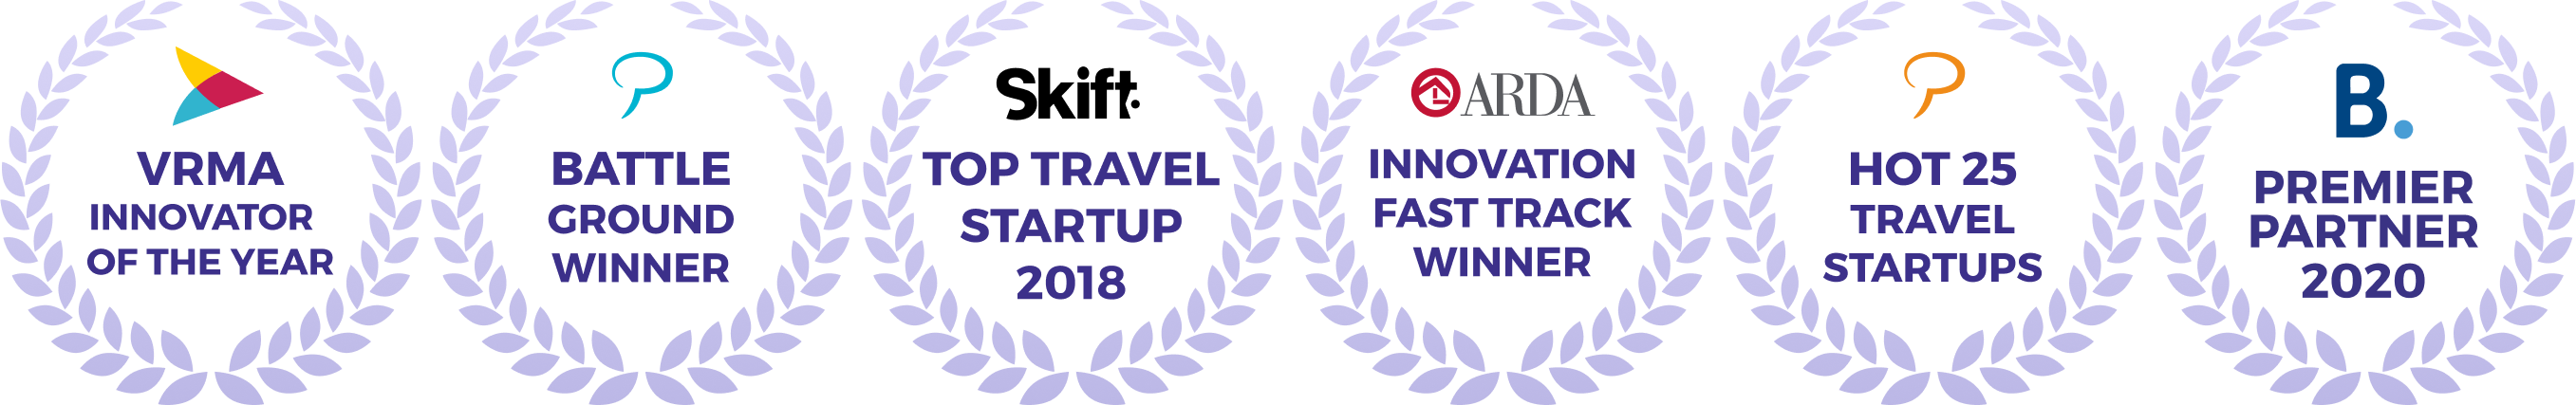 Futurestay's awards granted by VRMA, Phocuswright, Skift, ARDA, and Booking.com